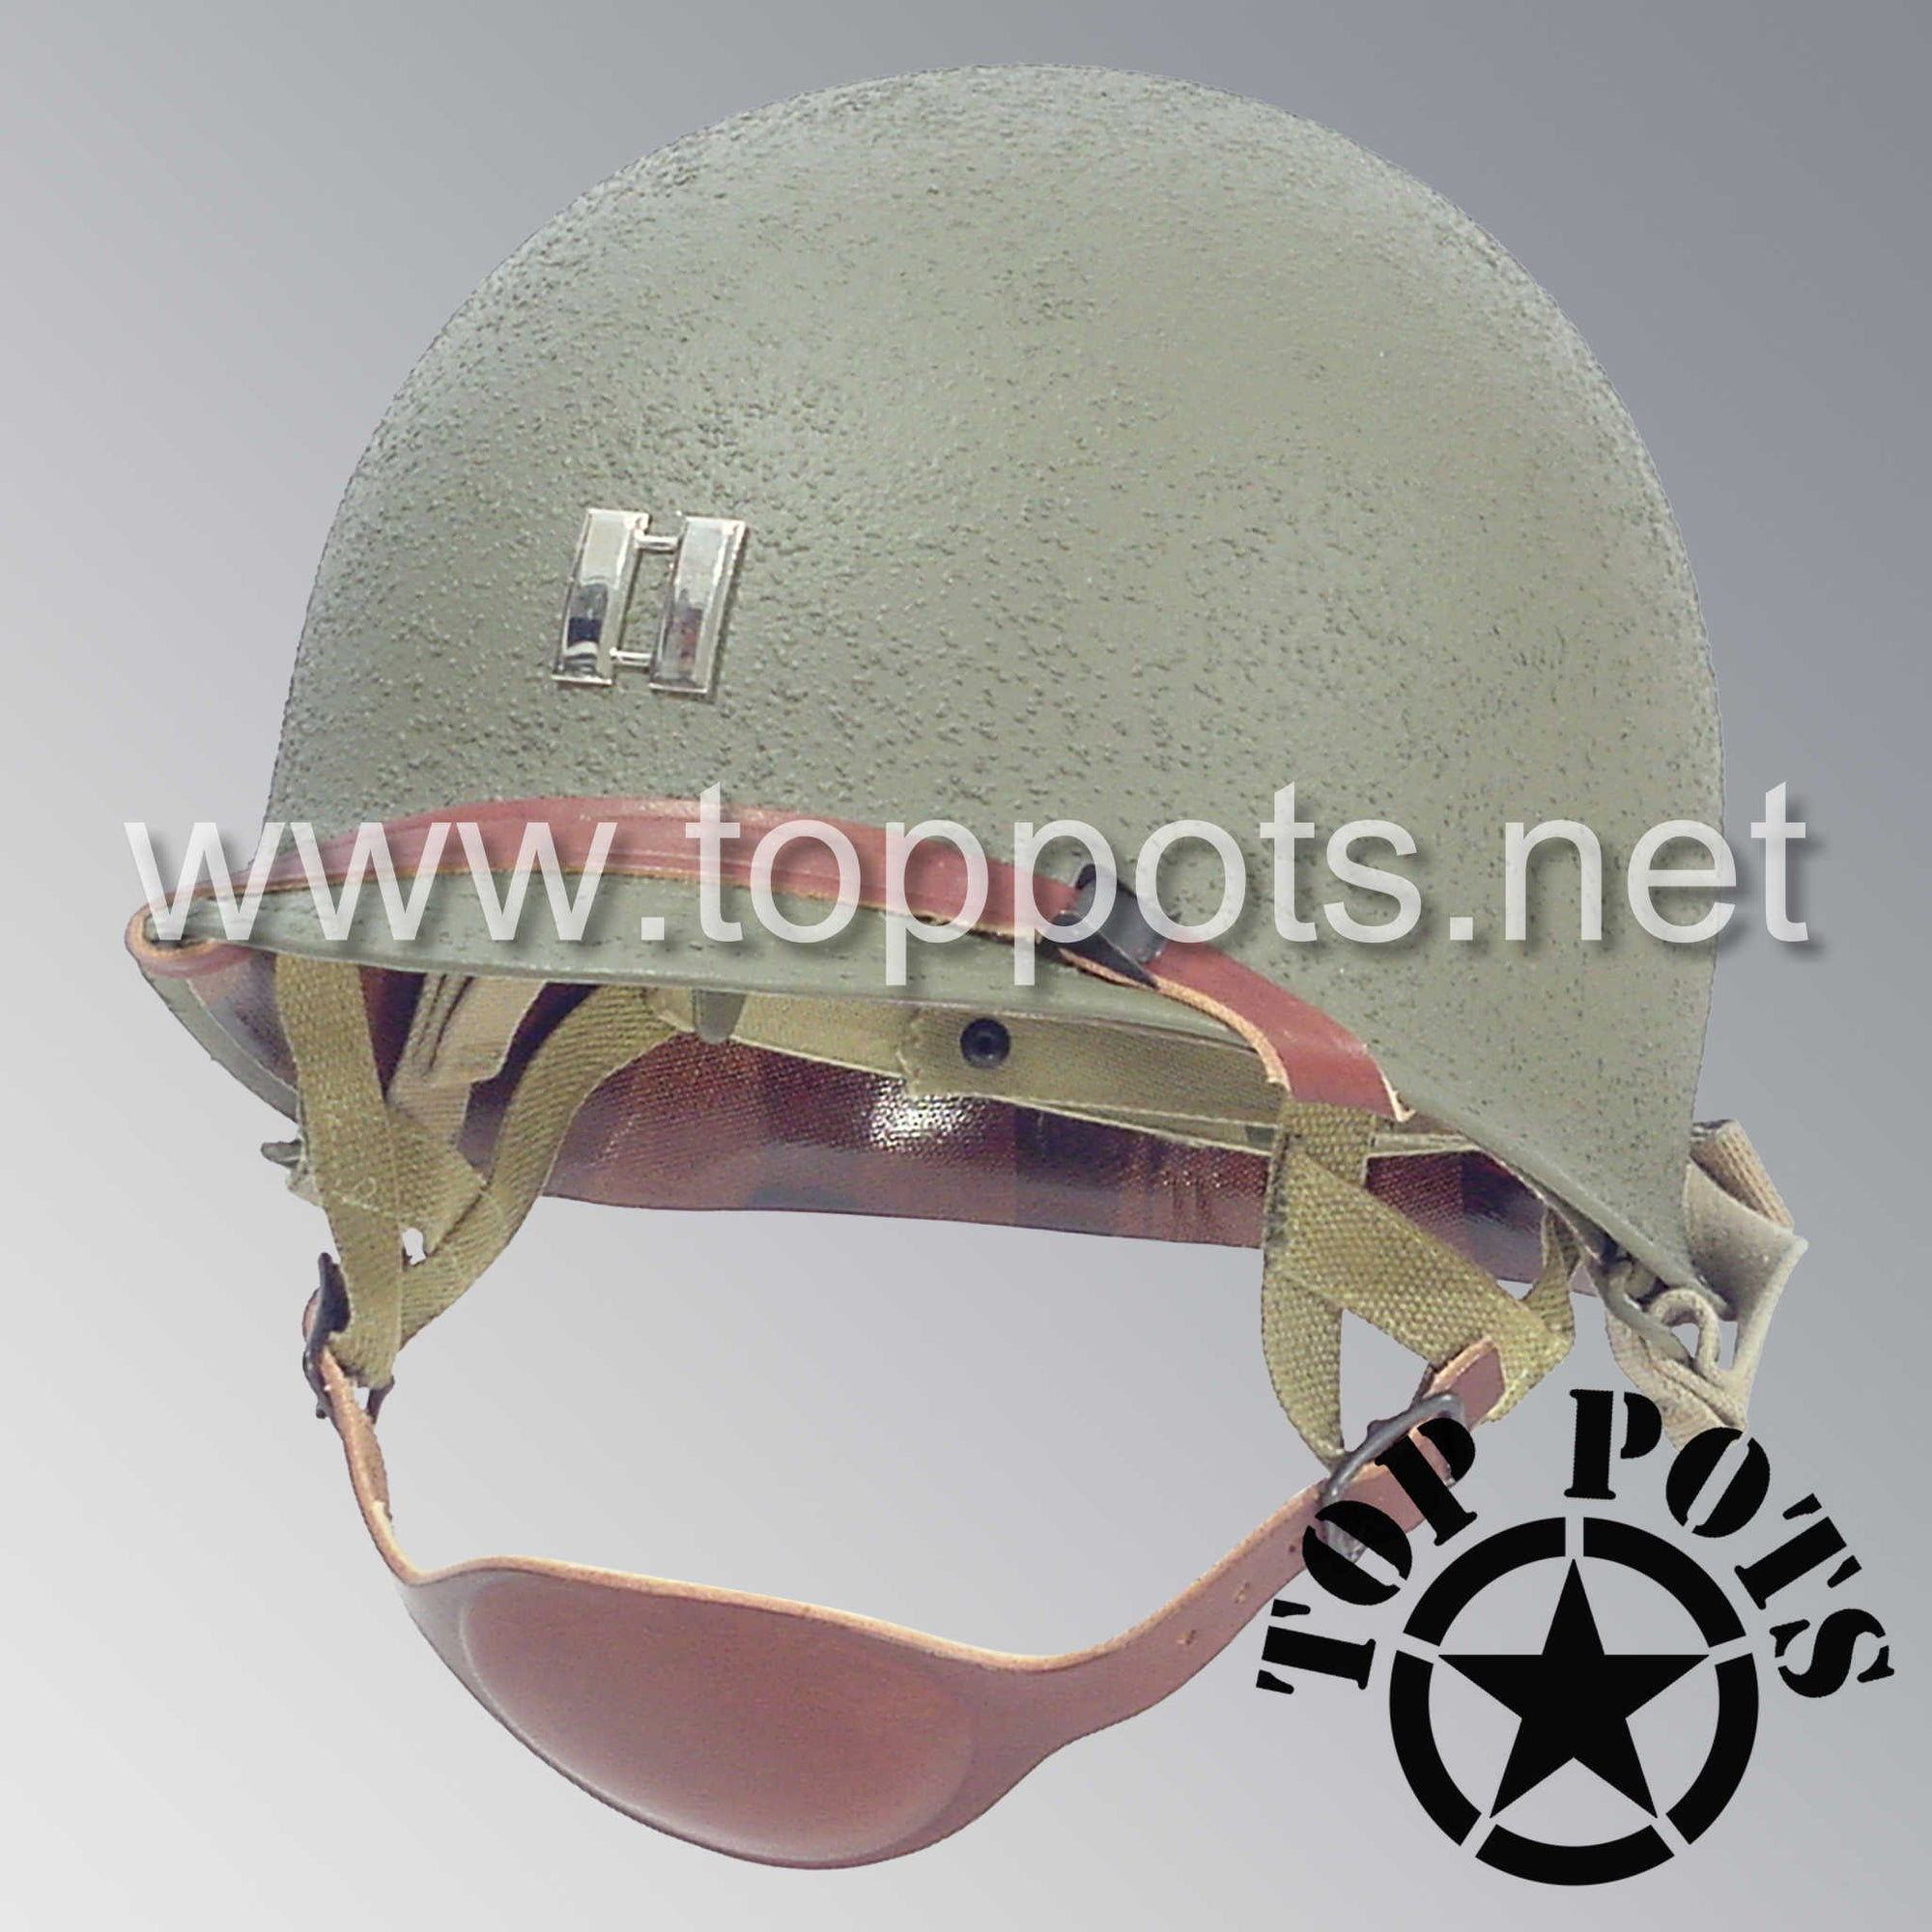 Image 1 of WWII US Army Restored Original M1C Paratrooper Airborne Helmet Swivel Bale Shell and Liner with Metal Captain Officer Rank Emblem